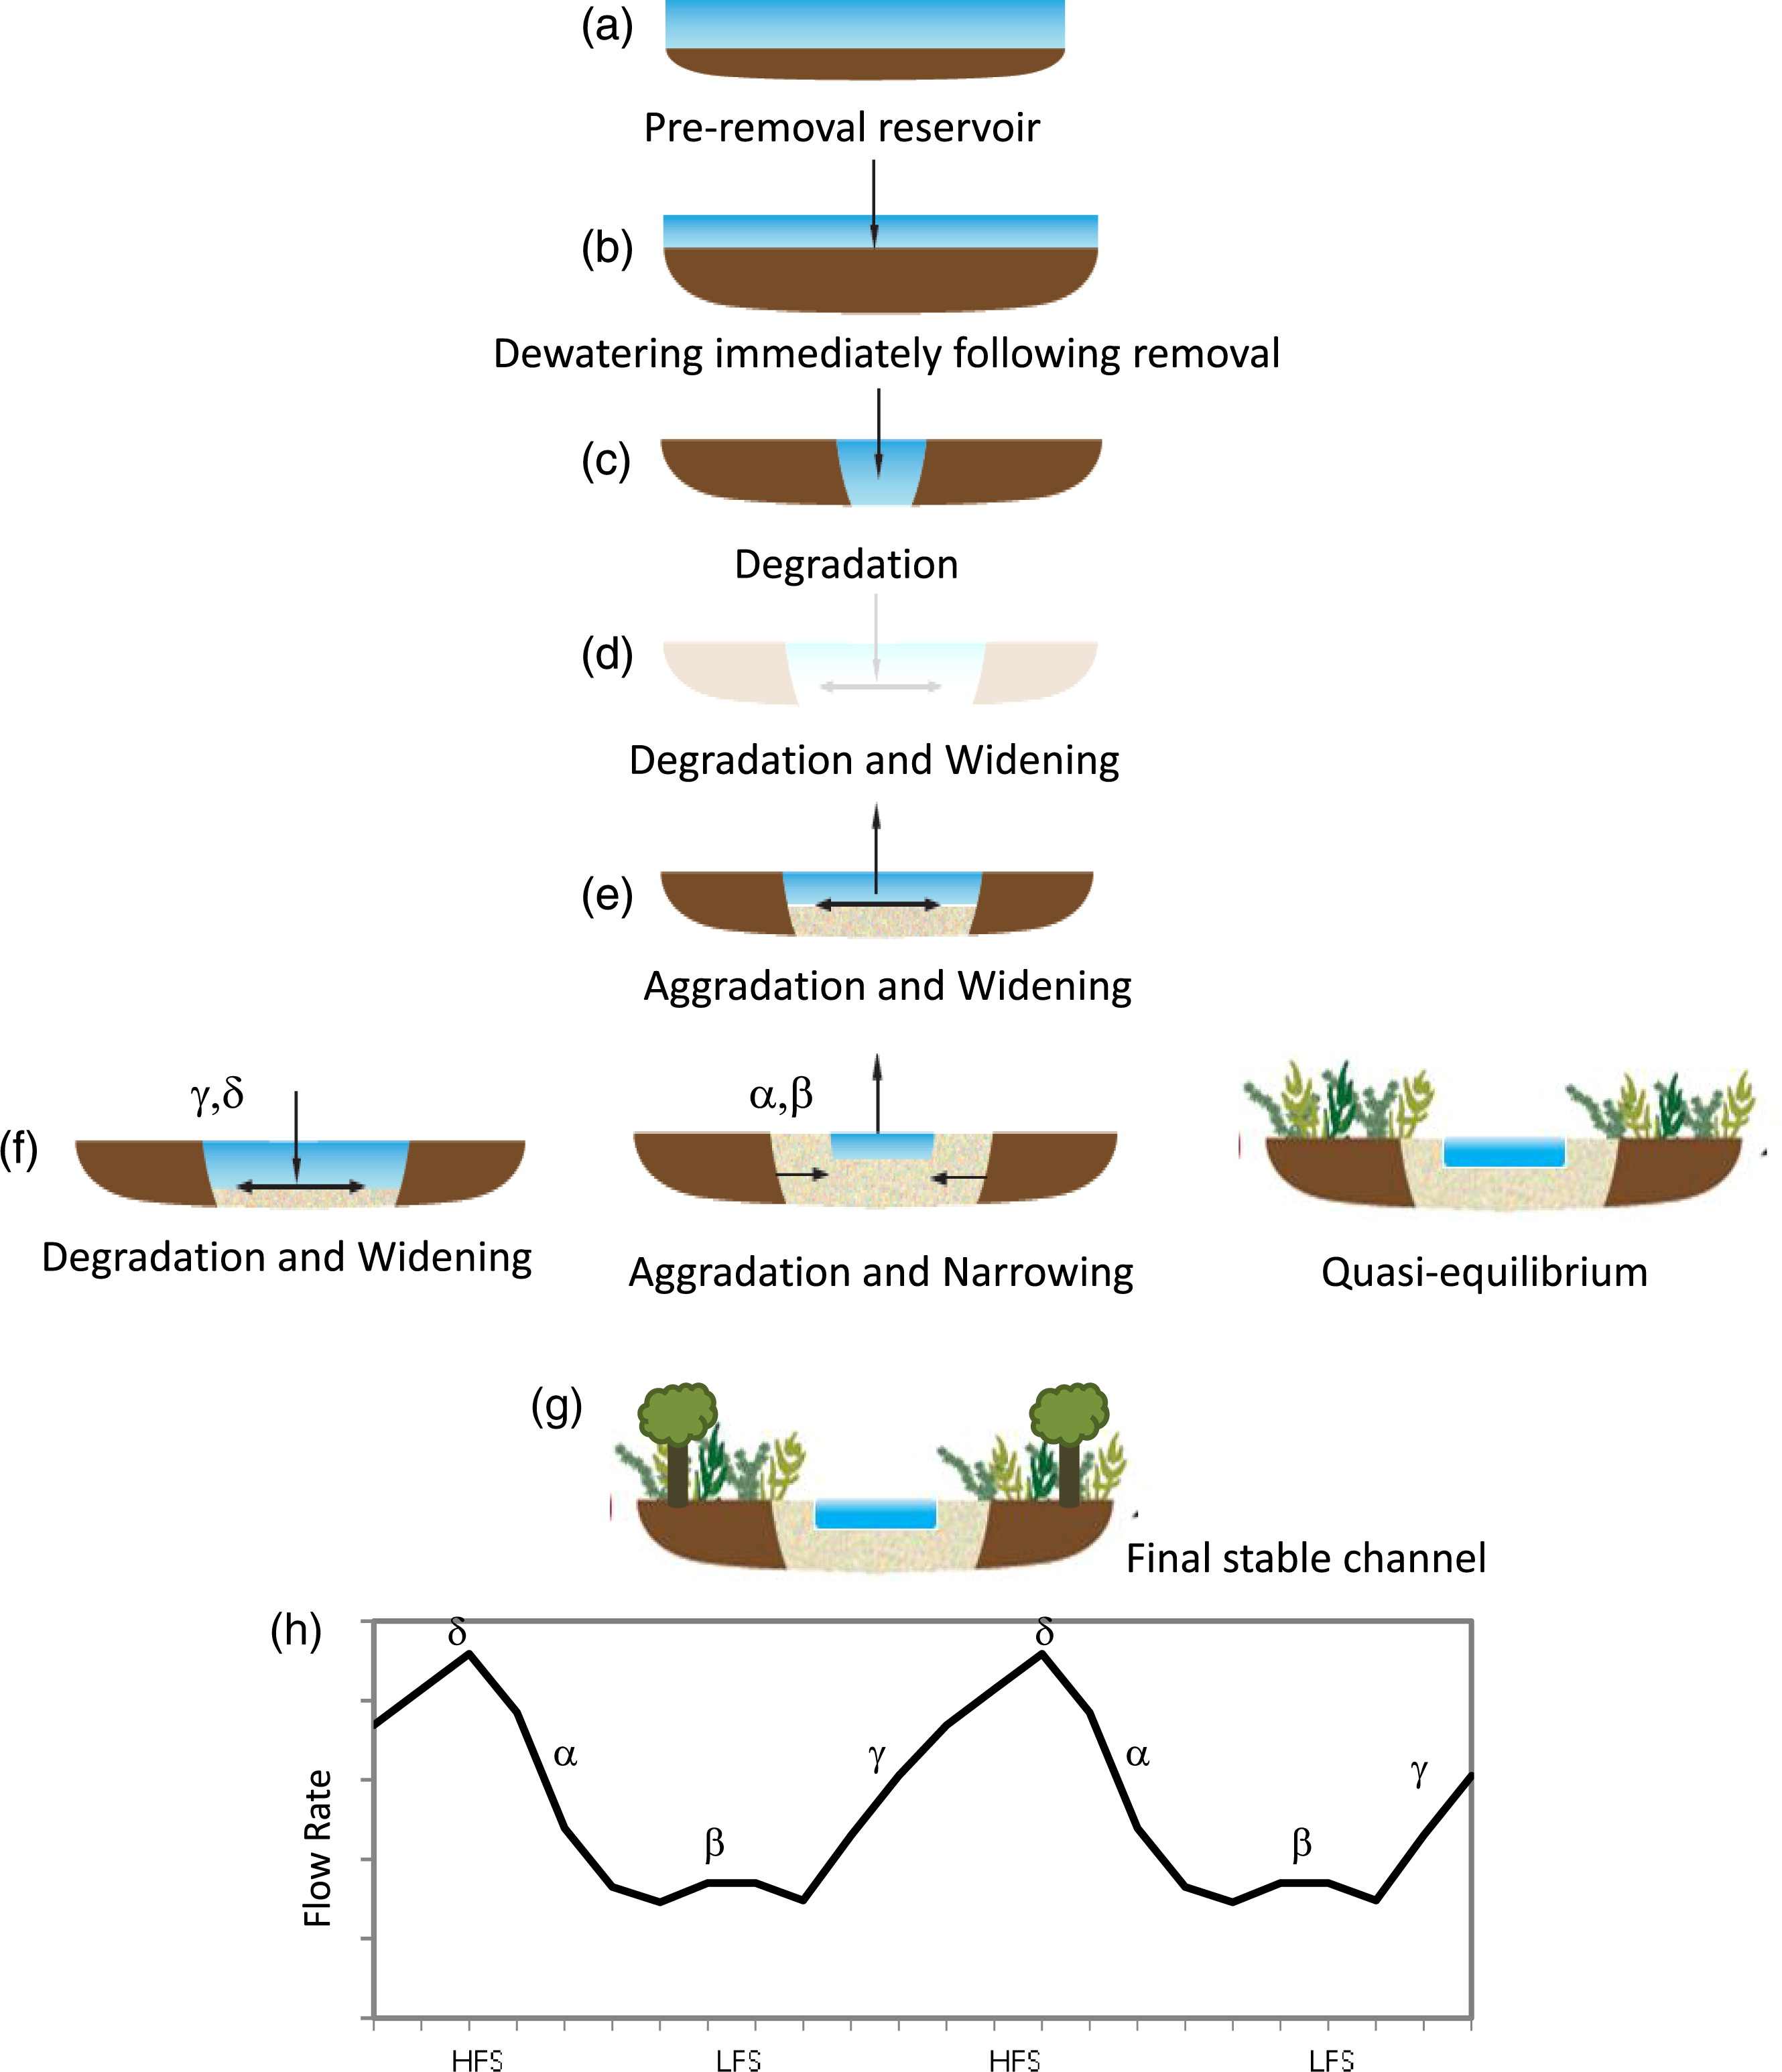 Importance of Hydrology on Channel Evolution Following Dam Removal.